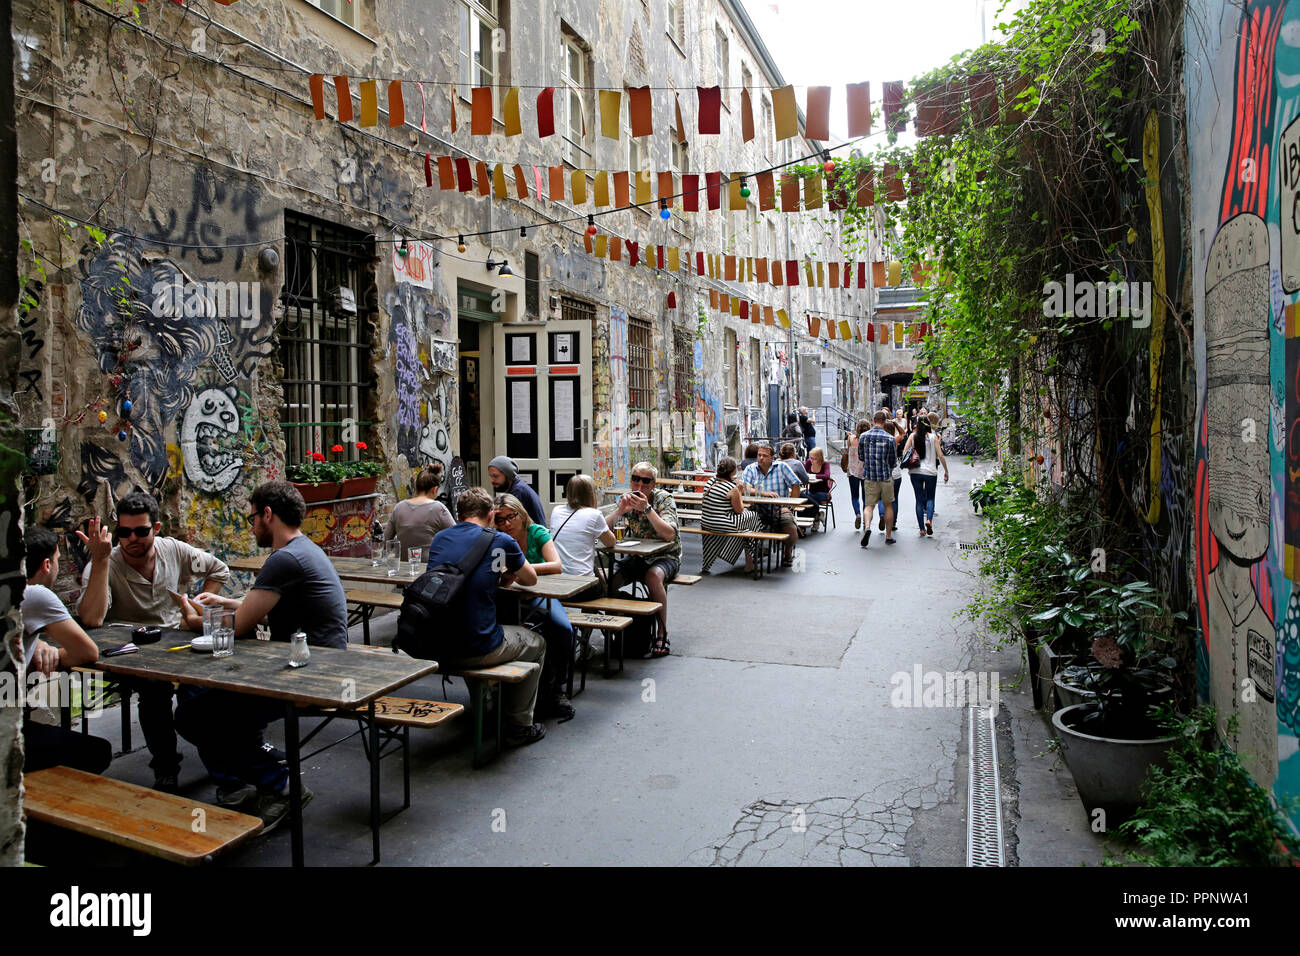 Restaurant In The Open Air Kino Central Backyard